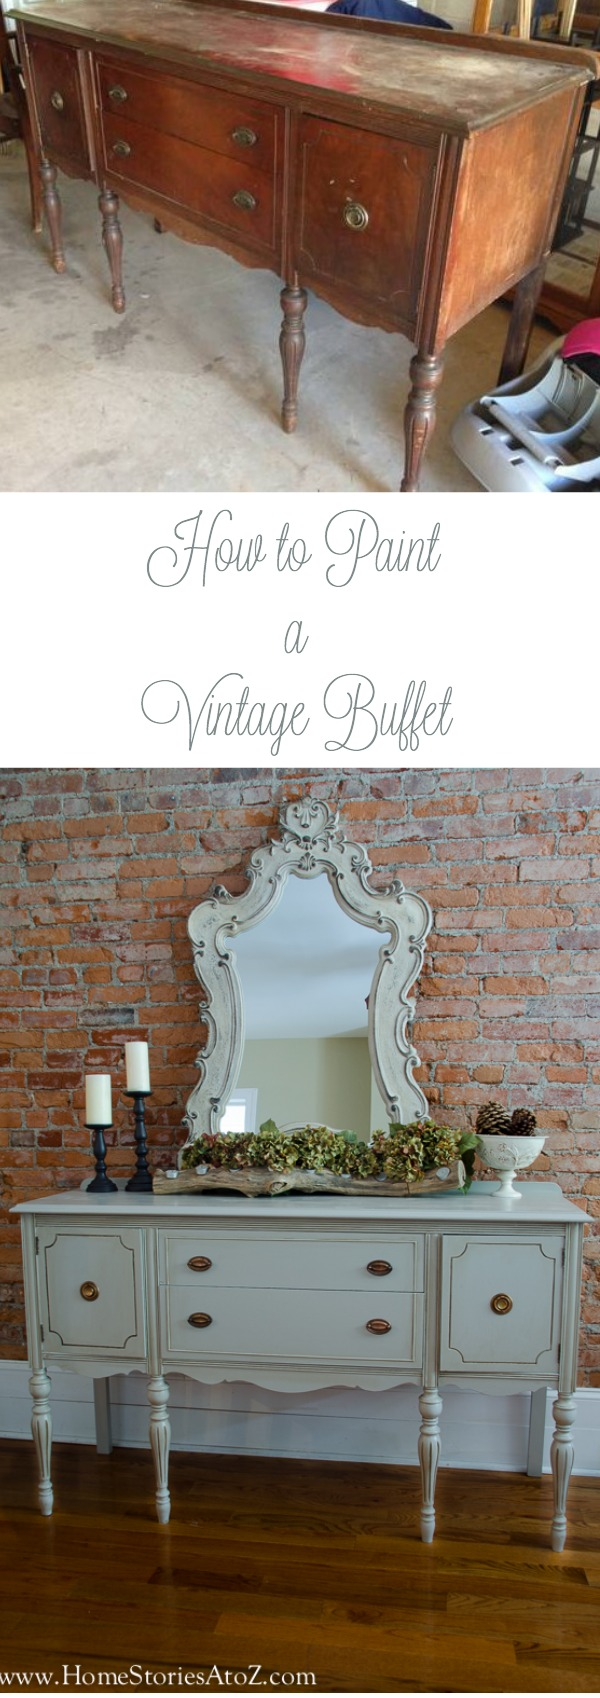 How to paint a vintage buffet